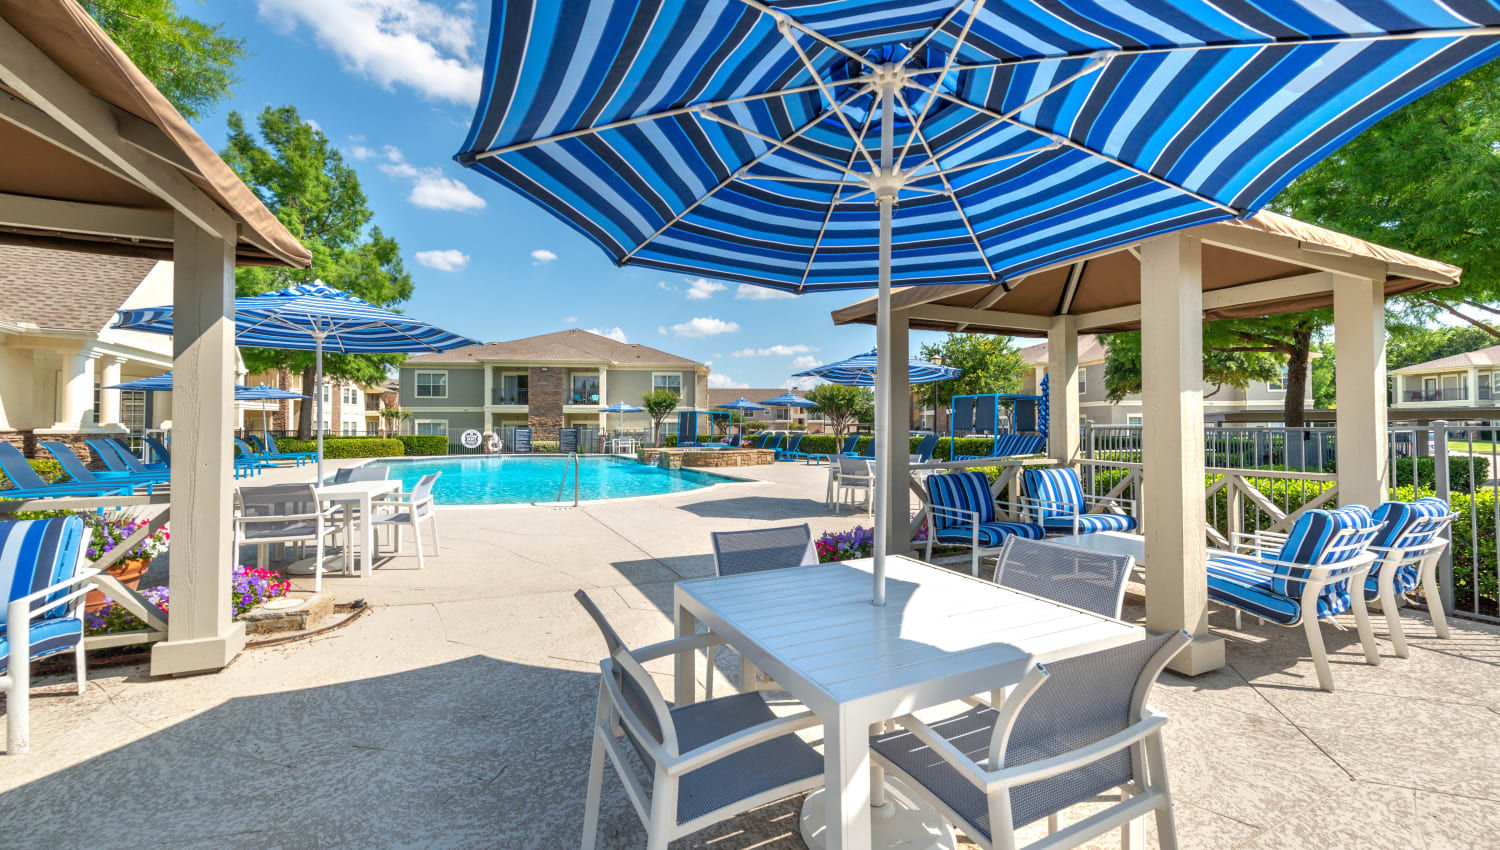 Shaded lounge areas near the pool at Olympus Stone Glen in Keller, Texas